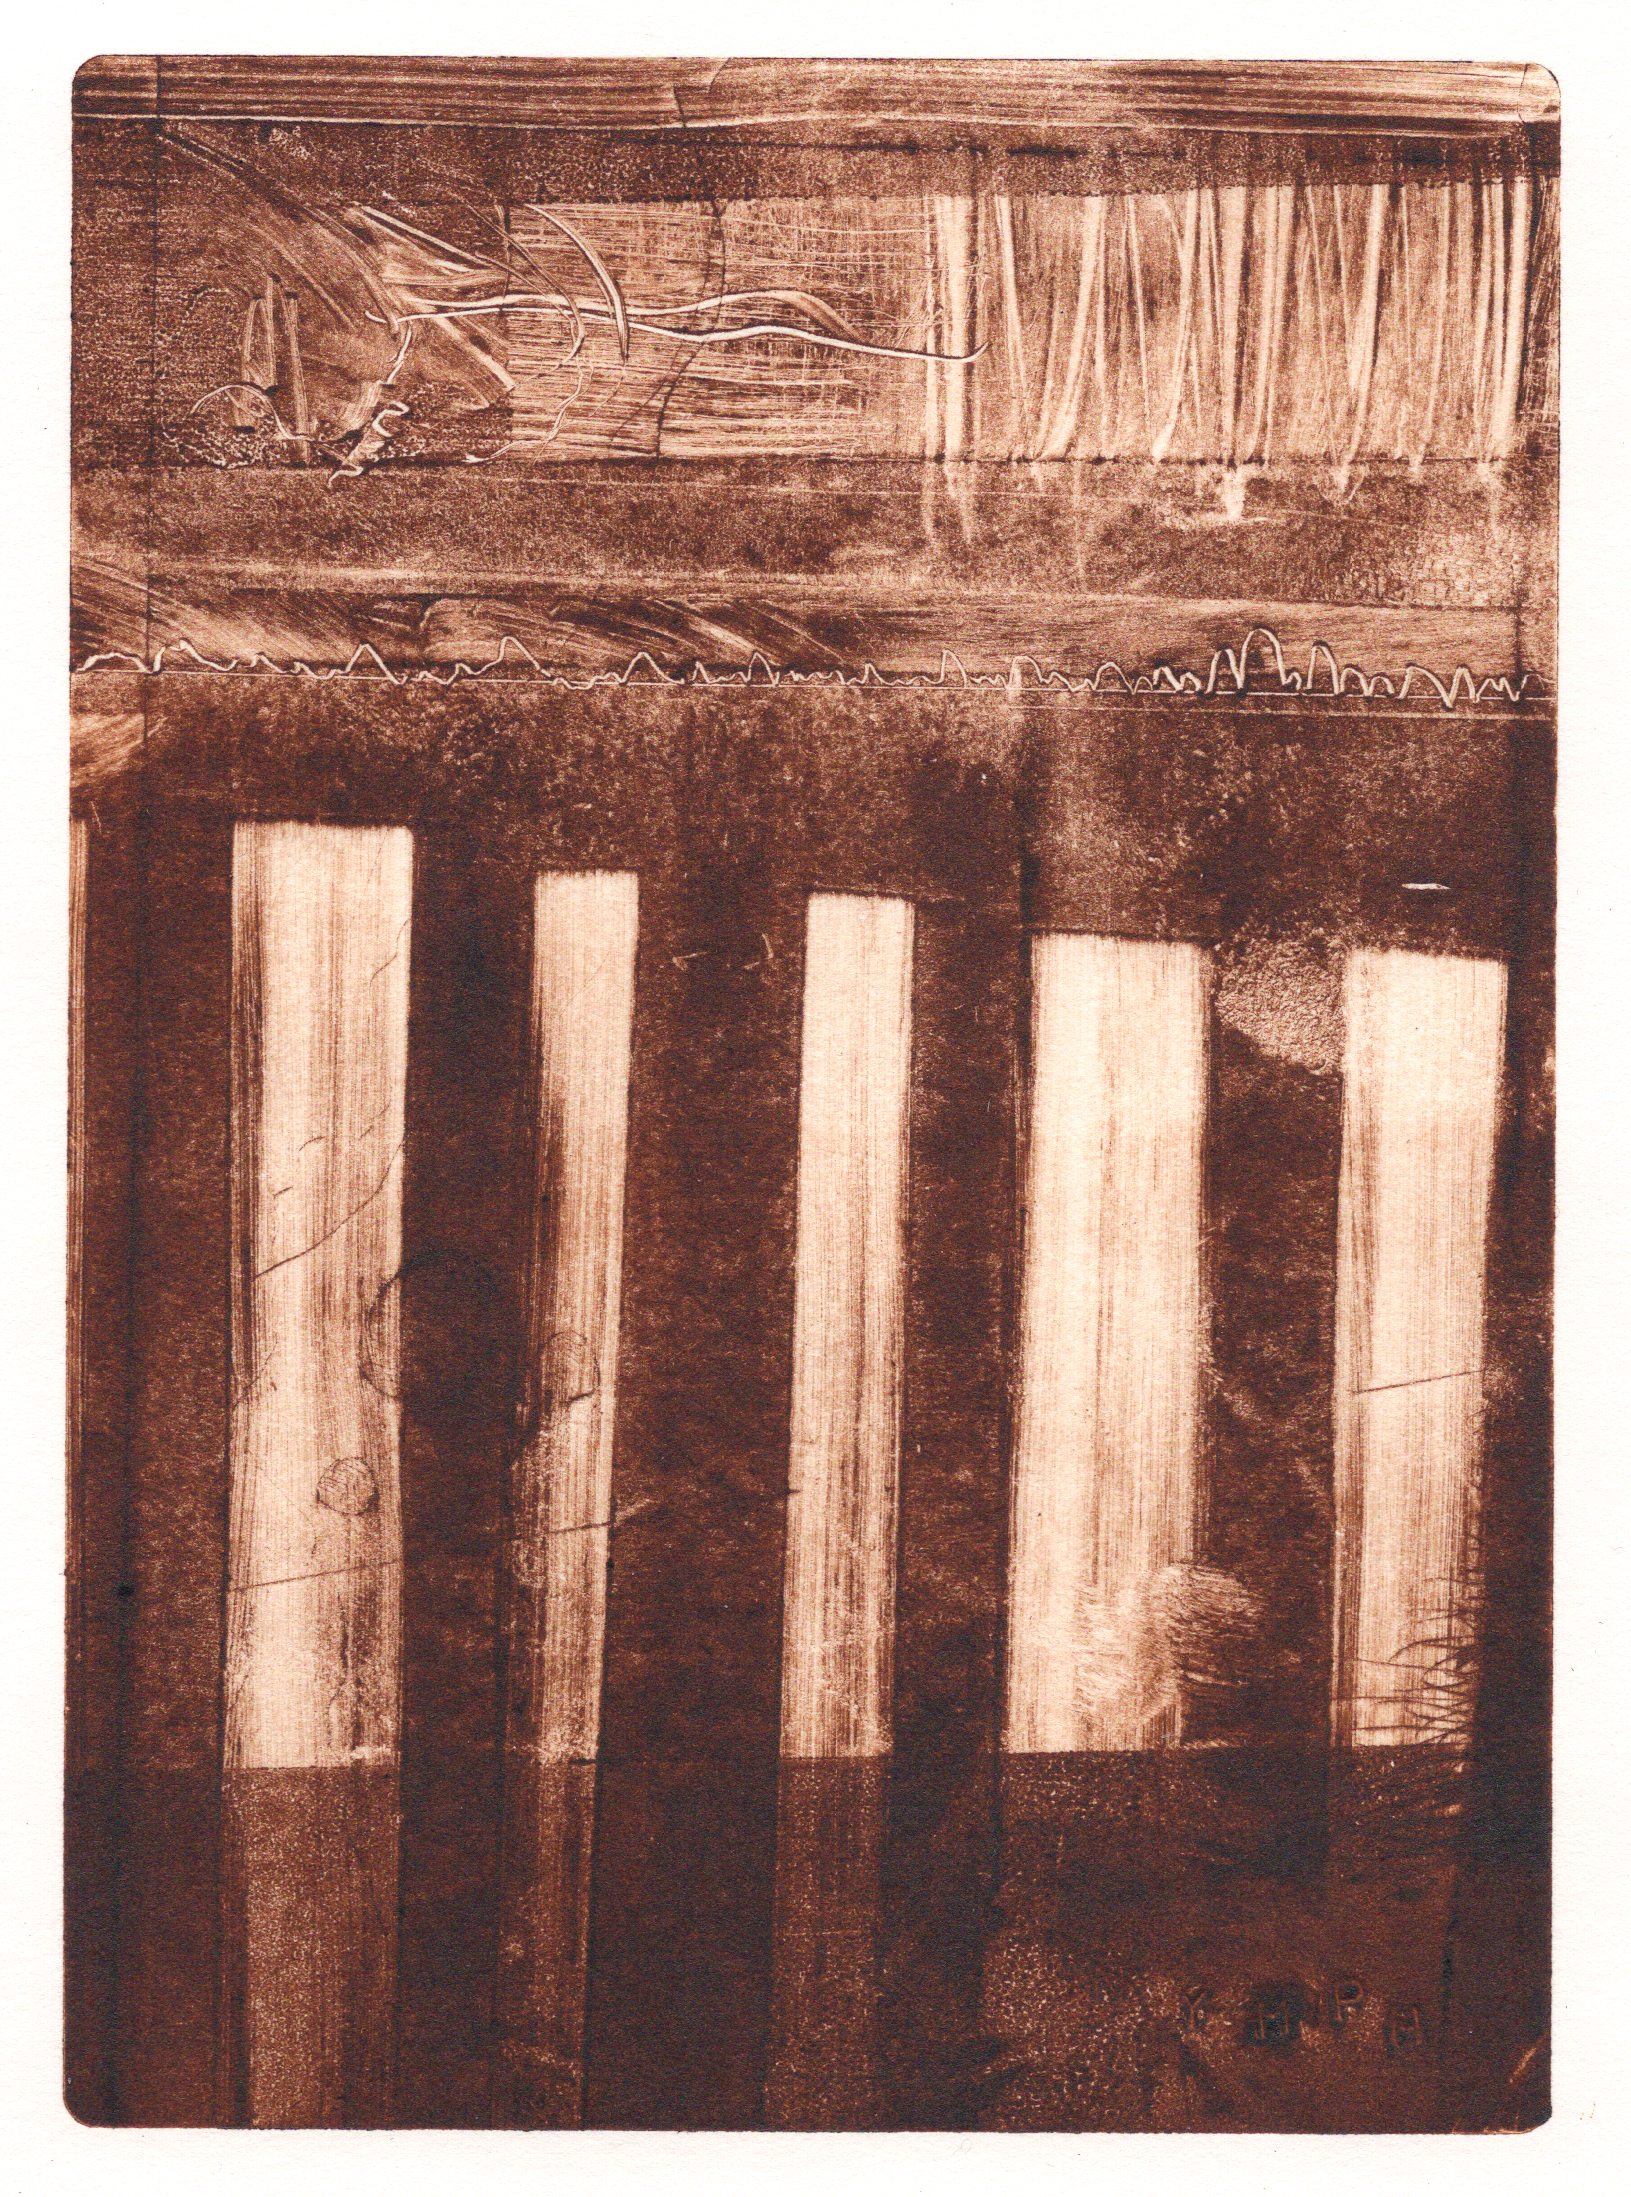 A monotype print by Clive Knights experimenting with umber ink on paper